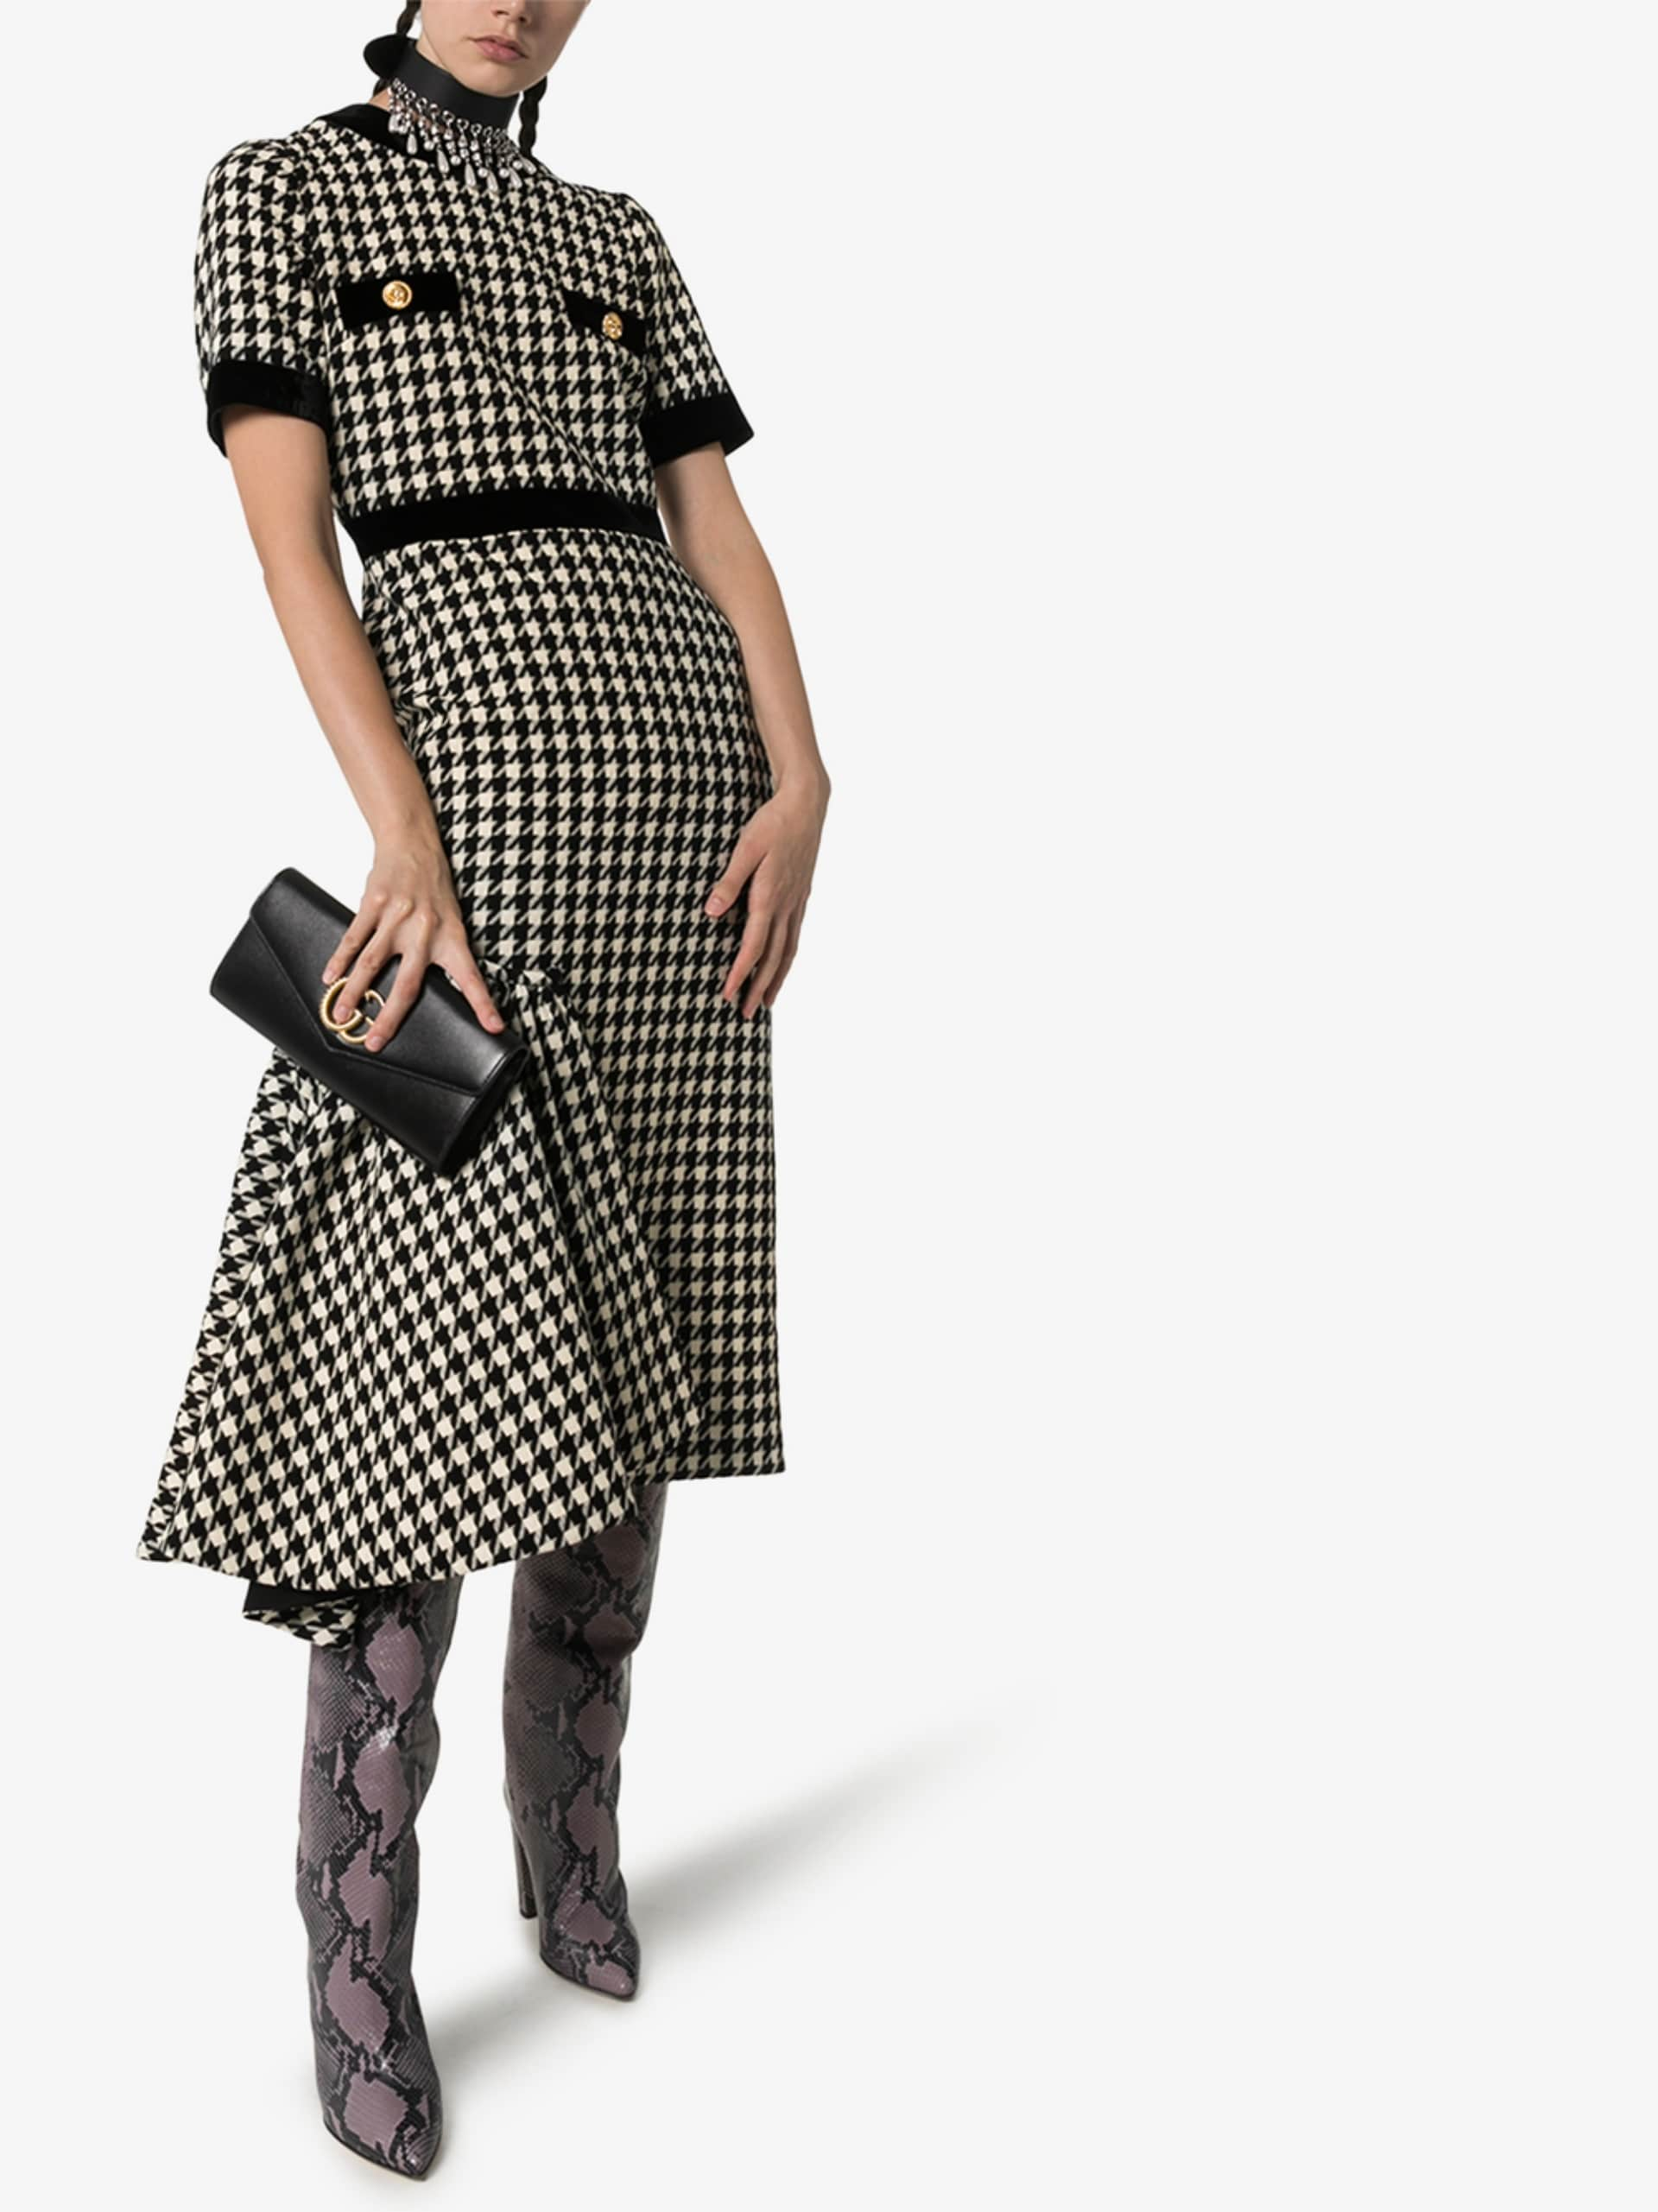 GUCCI Houndstooth Wool Cape Dress